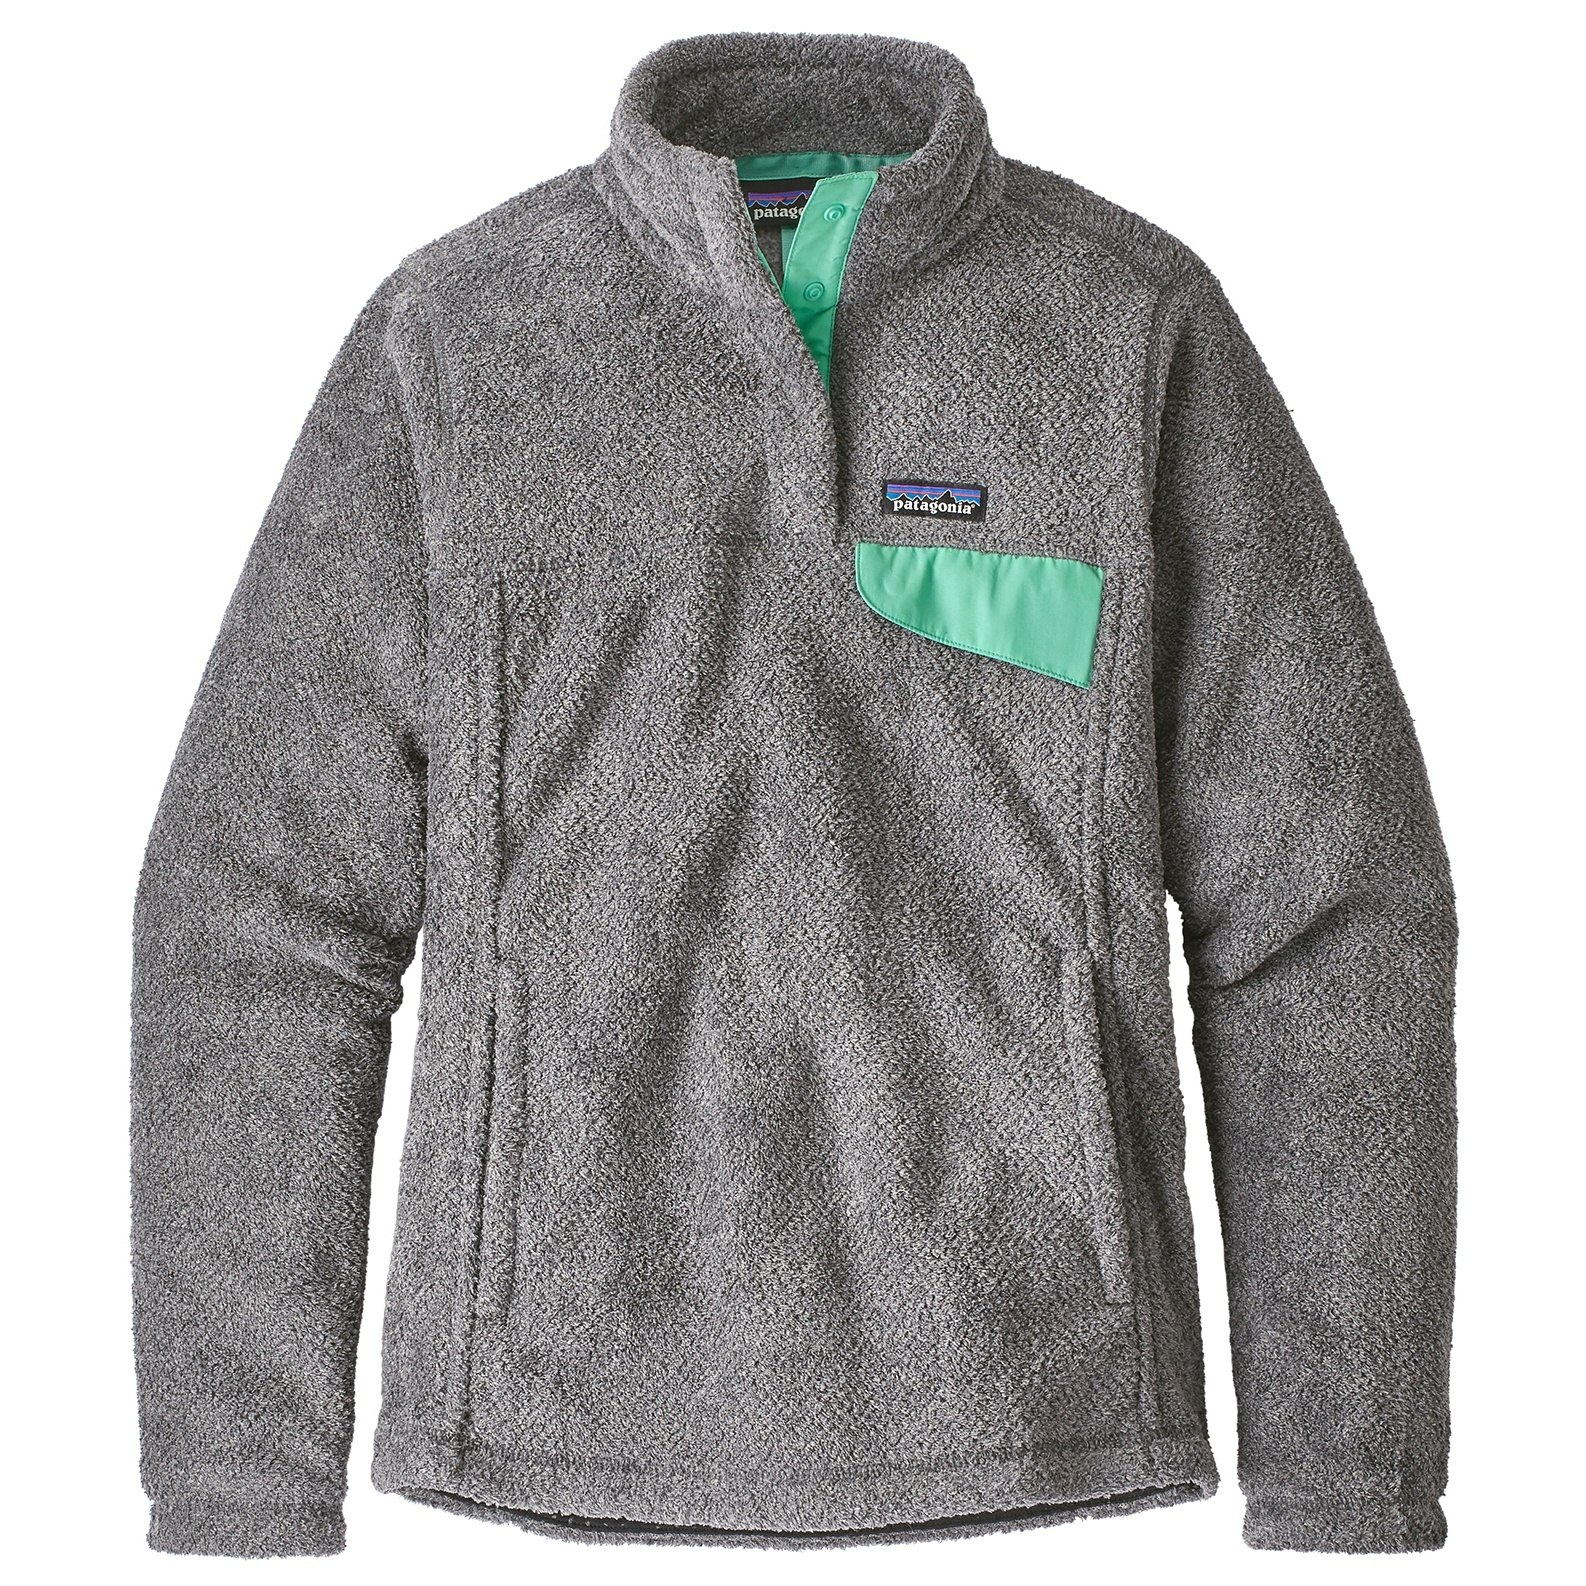 3676269e4 Patagonia Women's Re Tool Snap T Pullover Jacket on Sale | Powder7.com